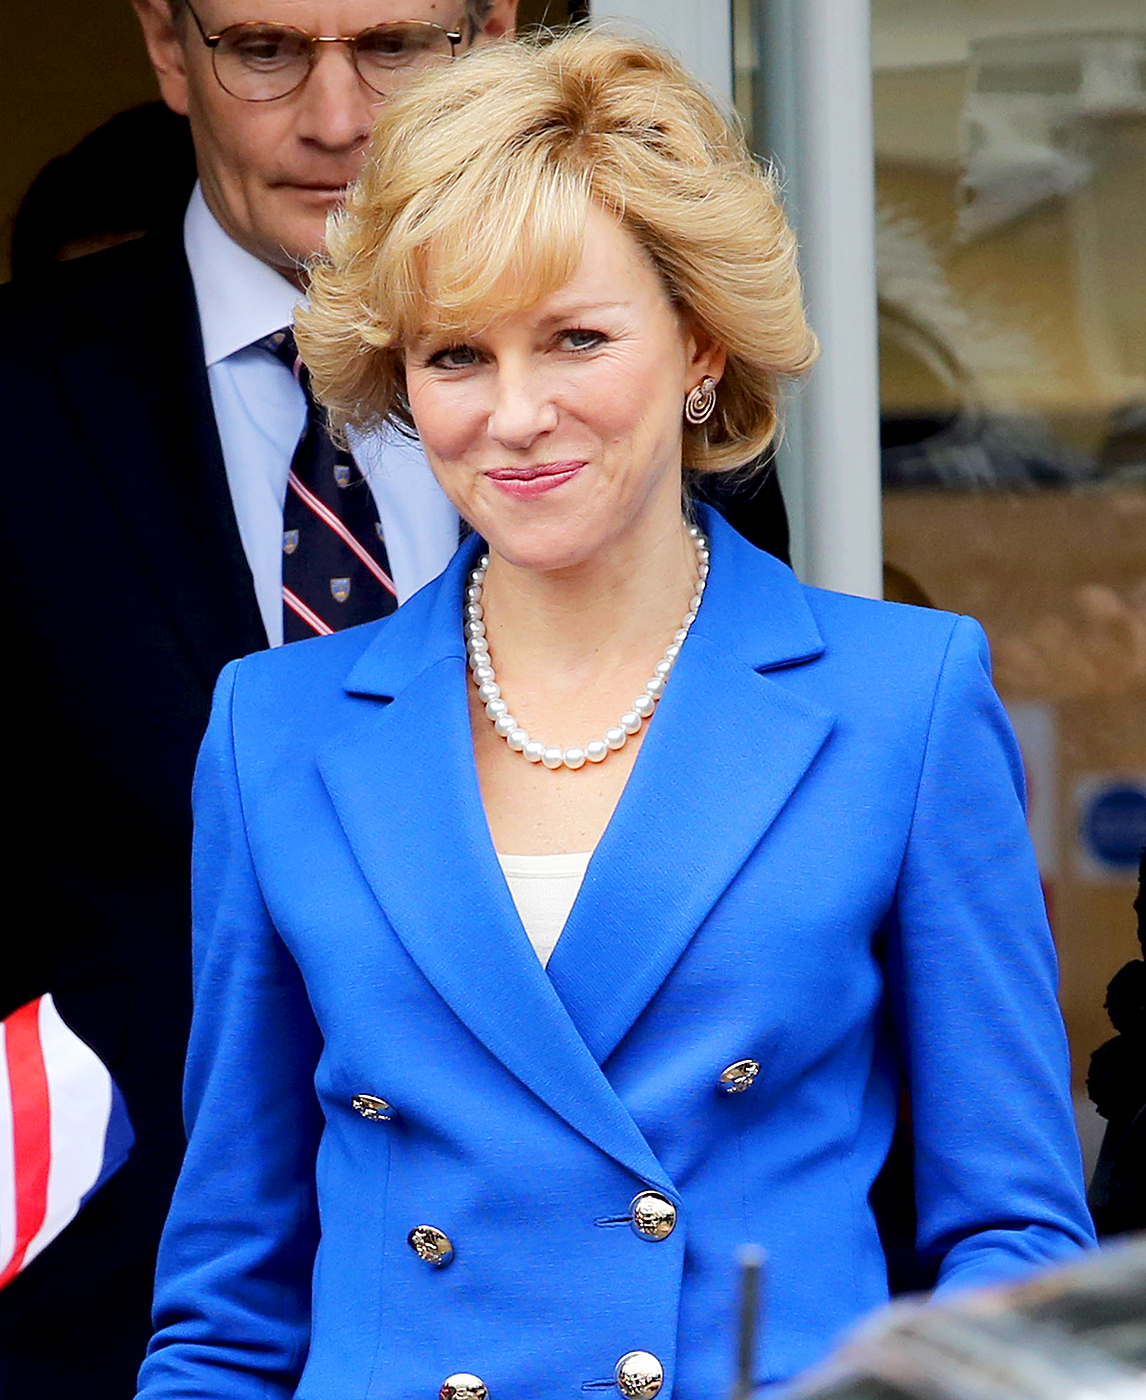 Watts played the late Princess Diana in a 2013 biopic, Diana , and the resemblance to Prince William and Harry 's mother was uncanny.